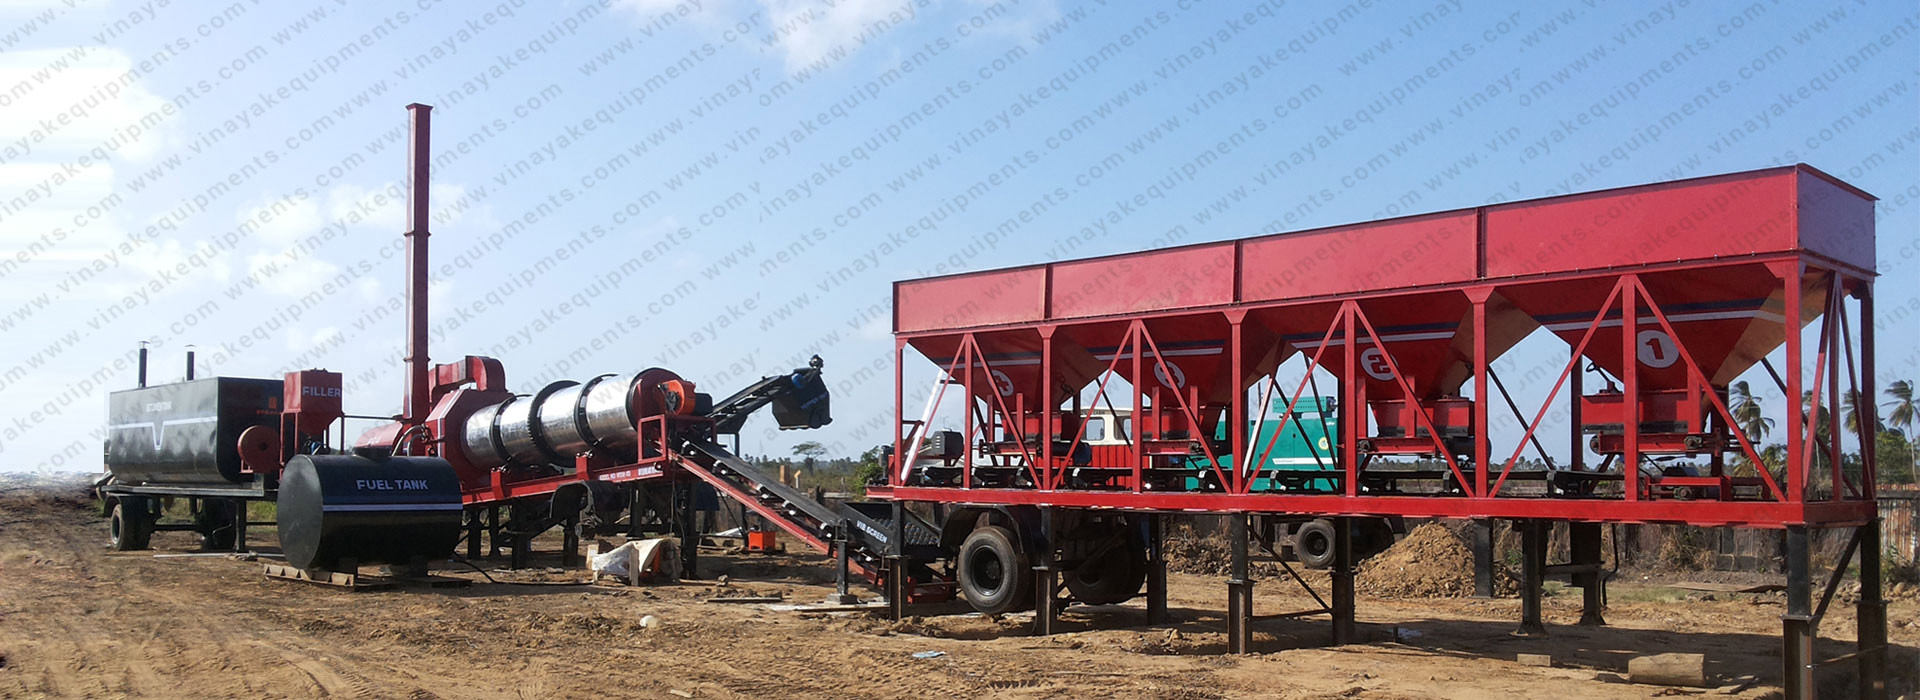 Asphalt drum mix plant manufacturers, suppliers, dealers